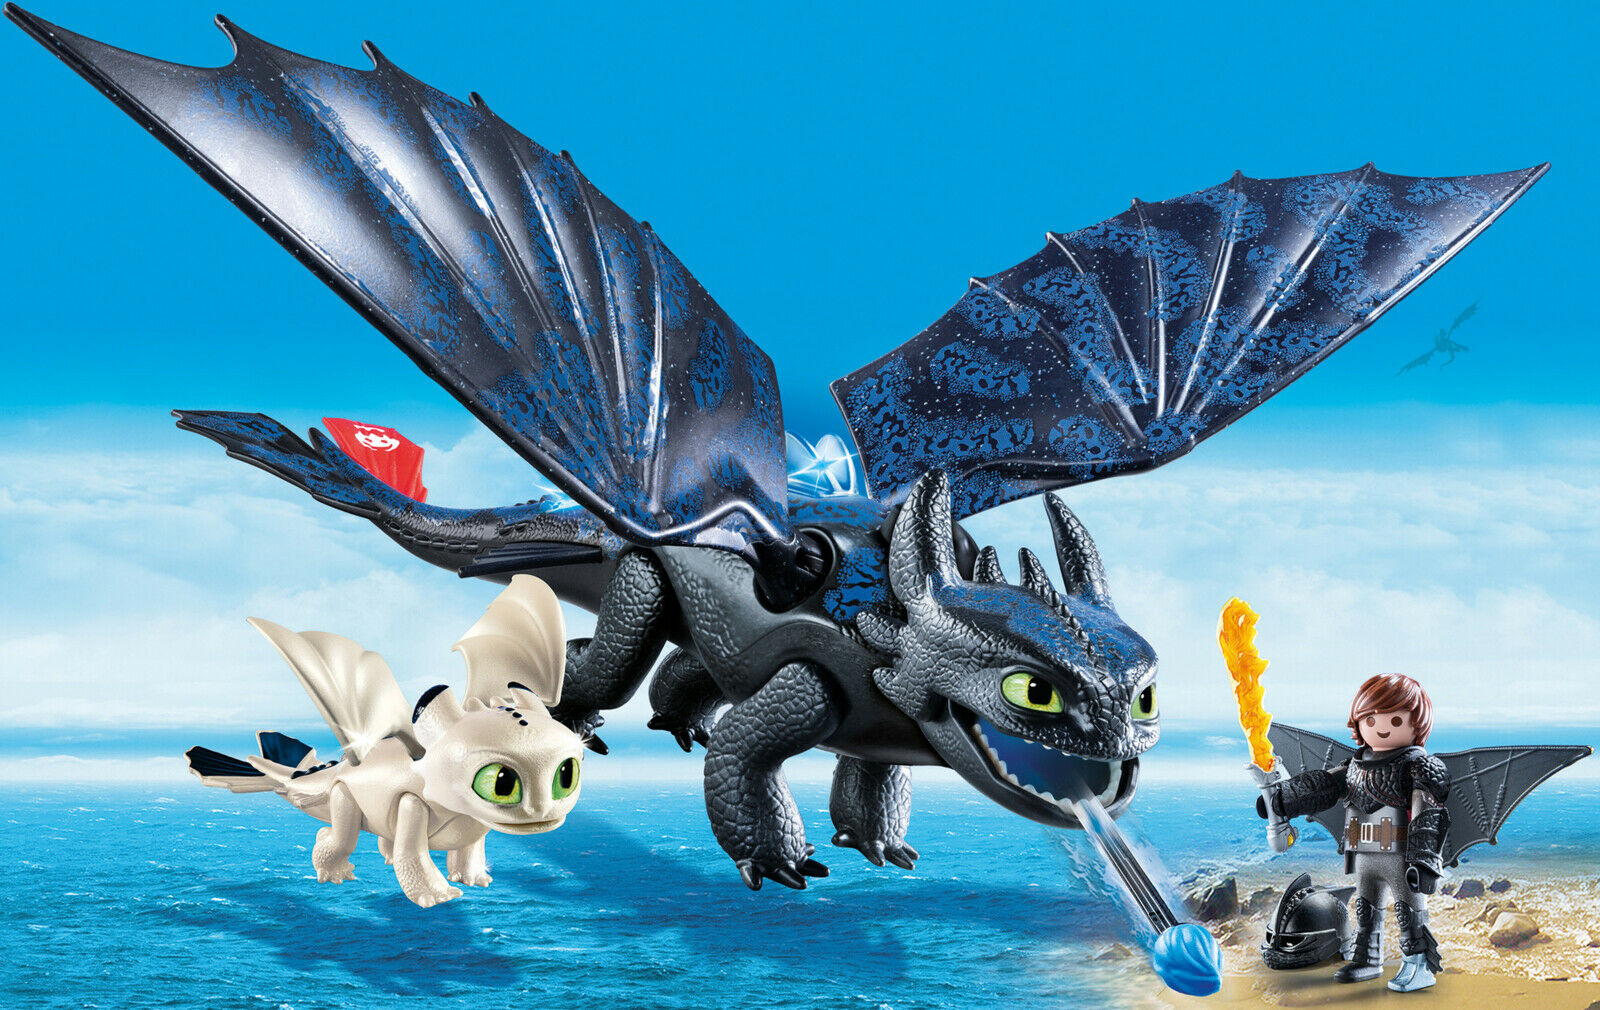 How to Train Your Dragon 3 Hiccup and Toothless with Baby Dragon By PLAYMOBIL